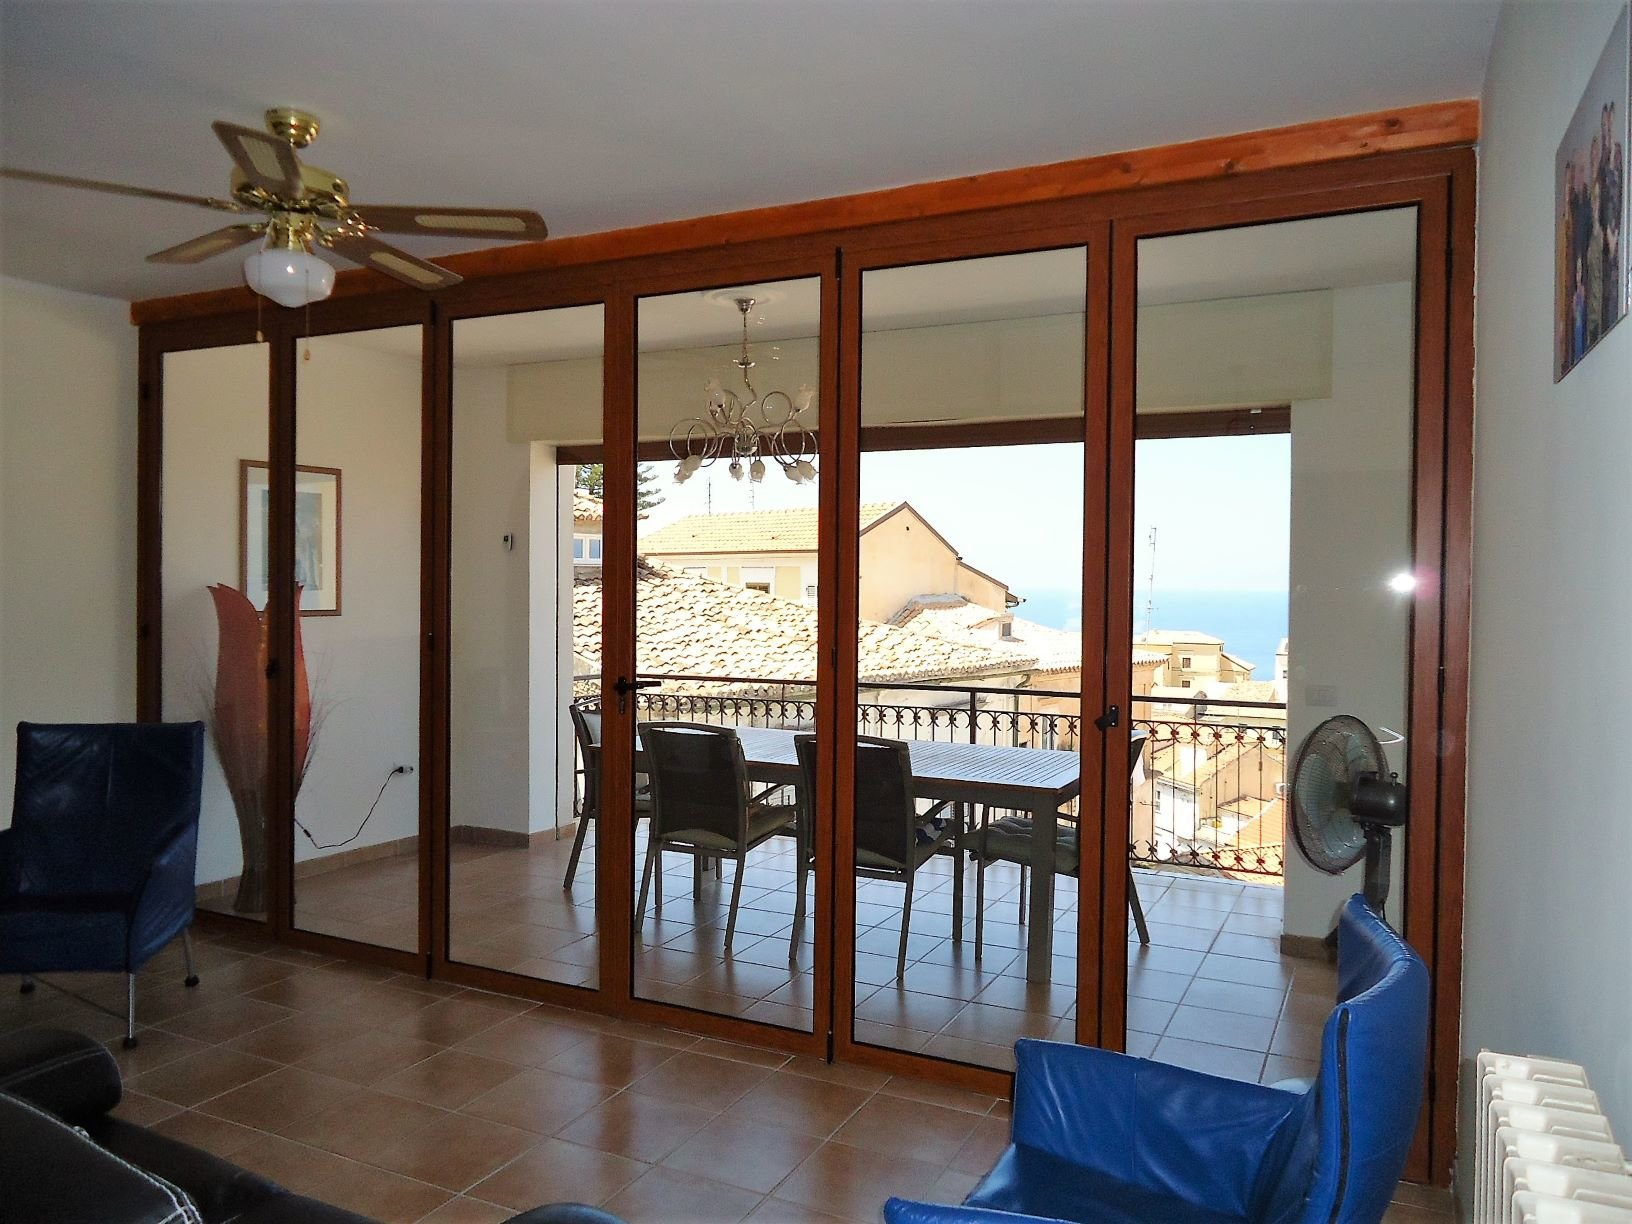 Newly renovated apartment with sea views in old town Pizzo